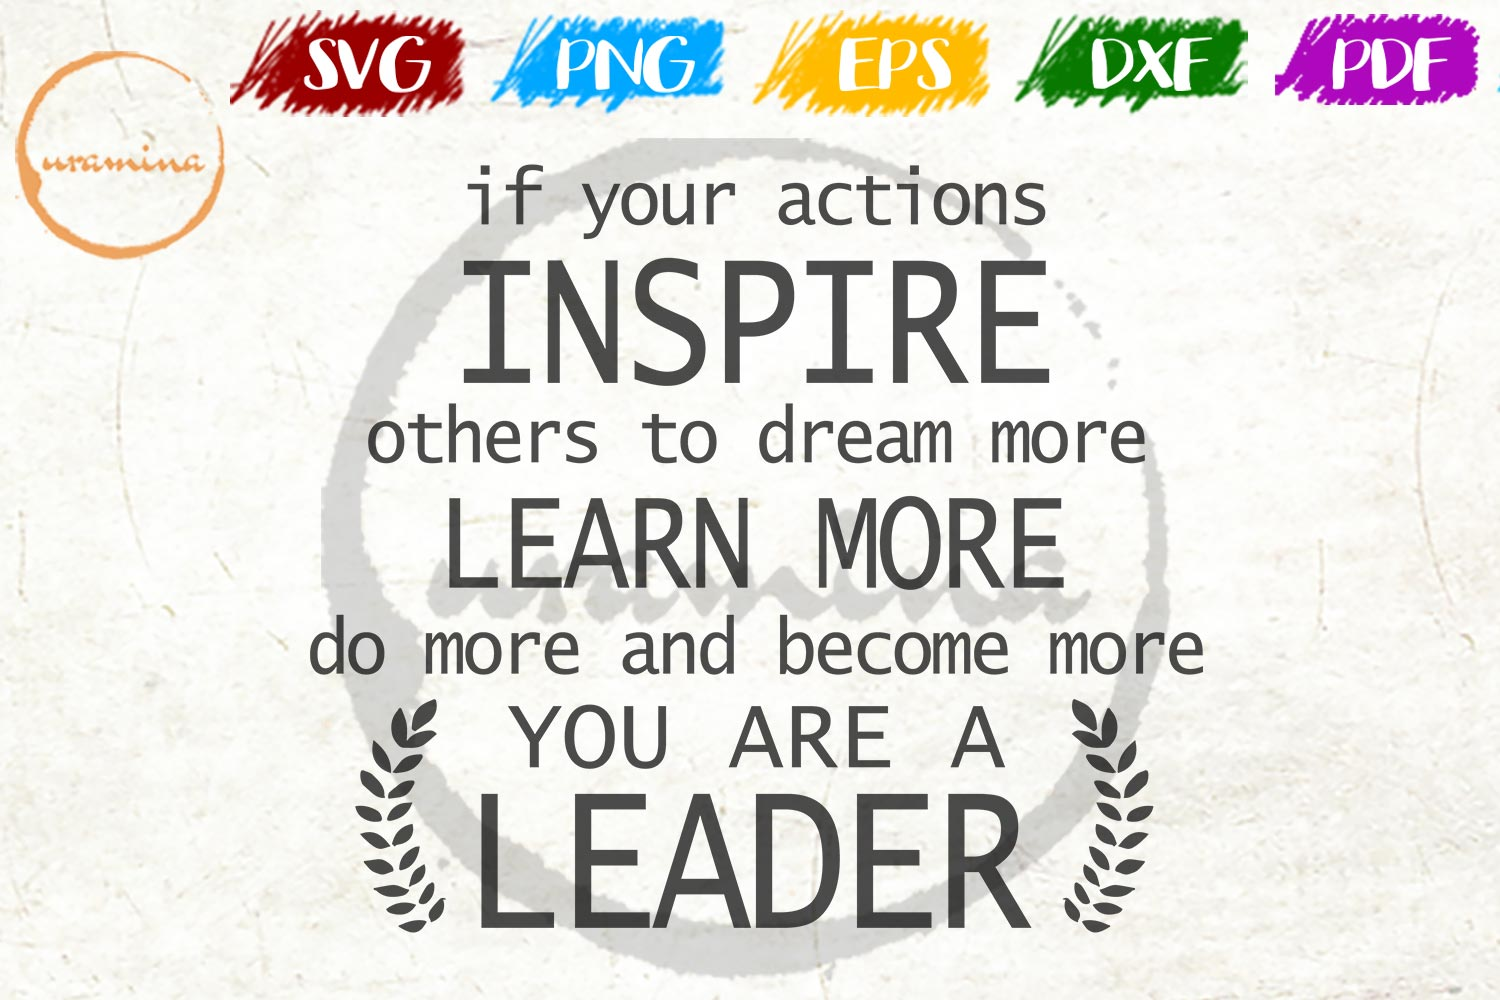 If Your Actions Inspire Others Home Office SVG PDF PNG DXF